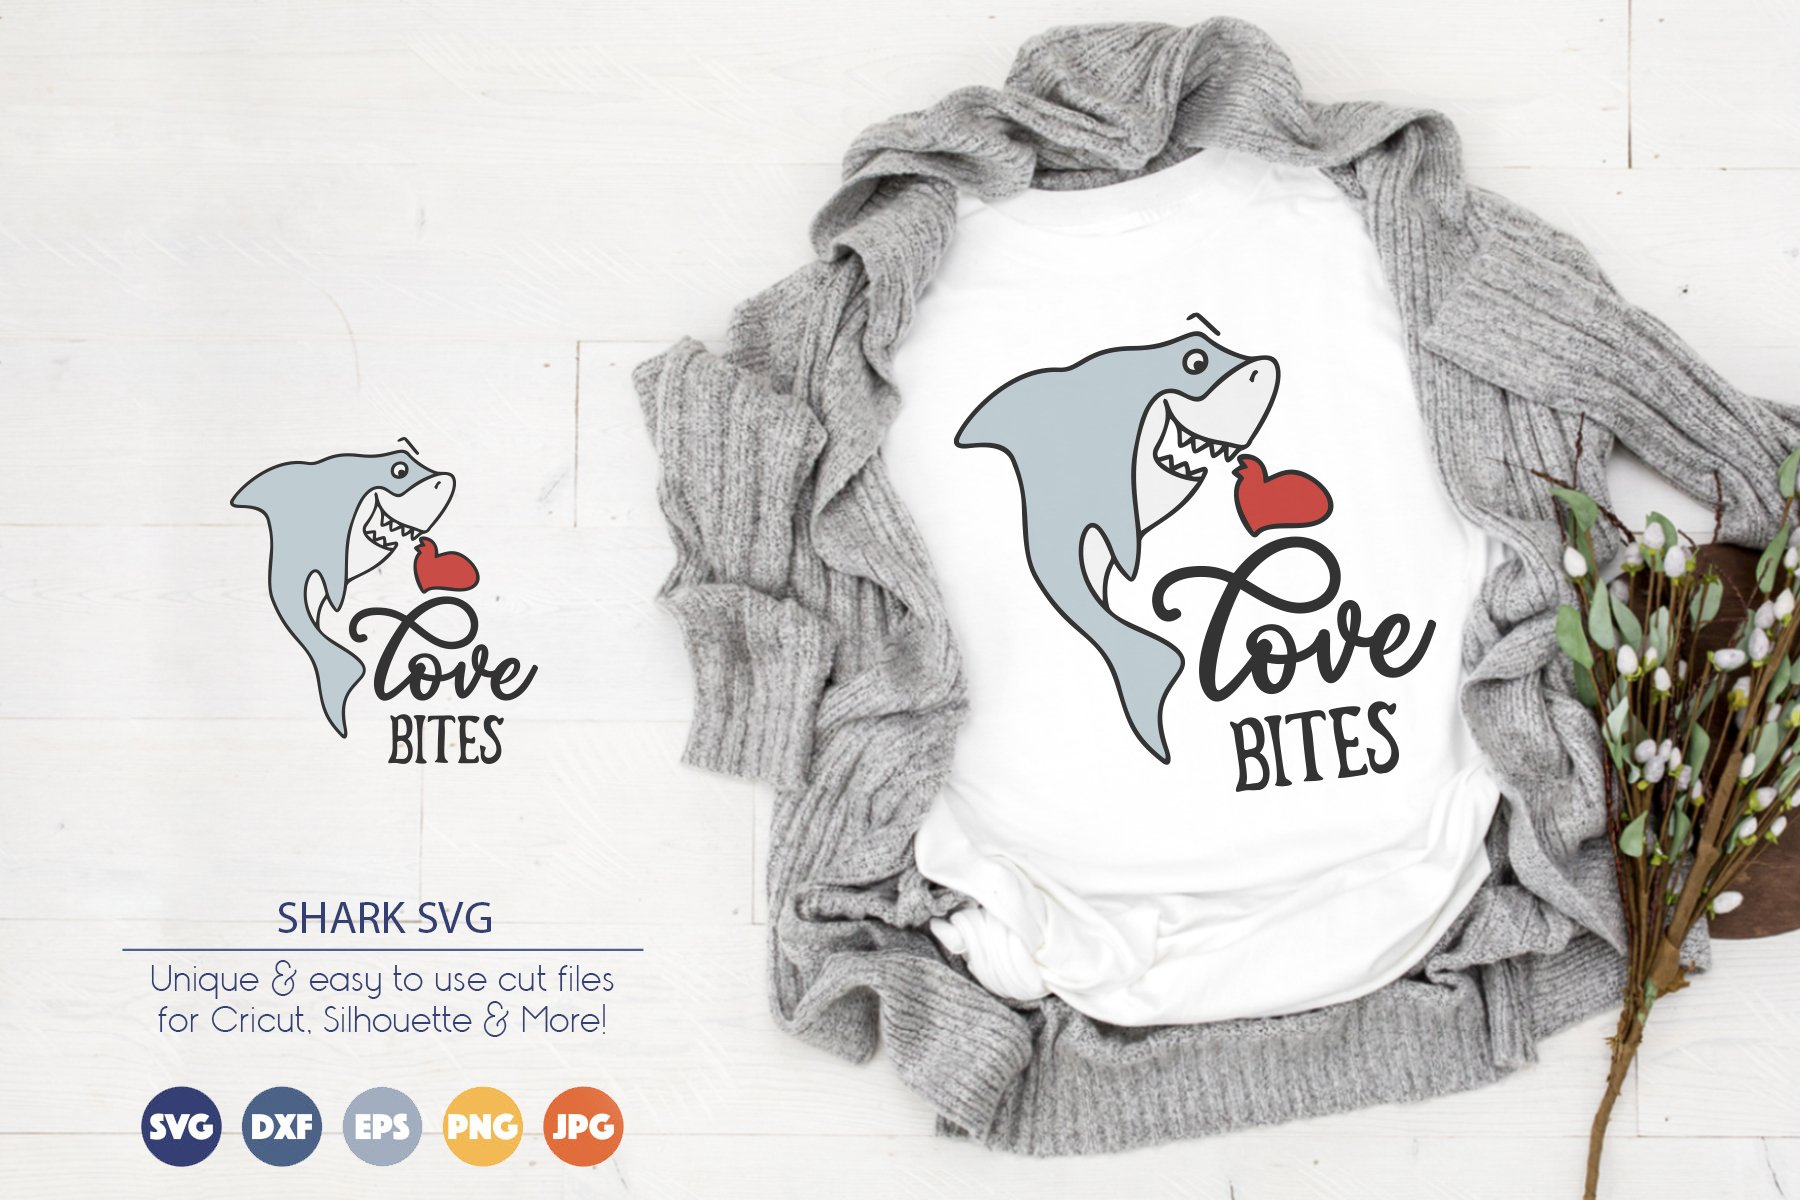 Cute Shark SVG | Love Bites SVG Cut File example image 1